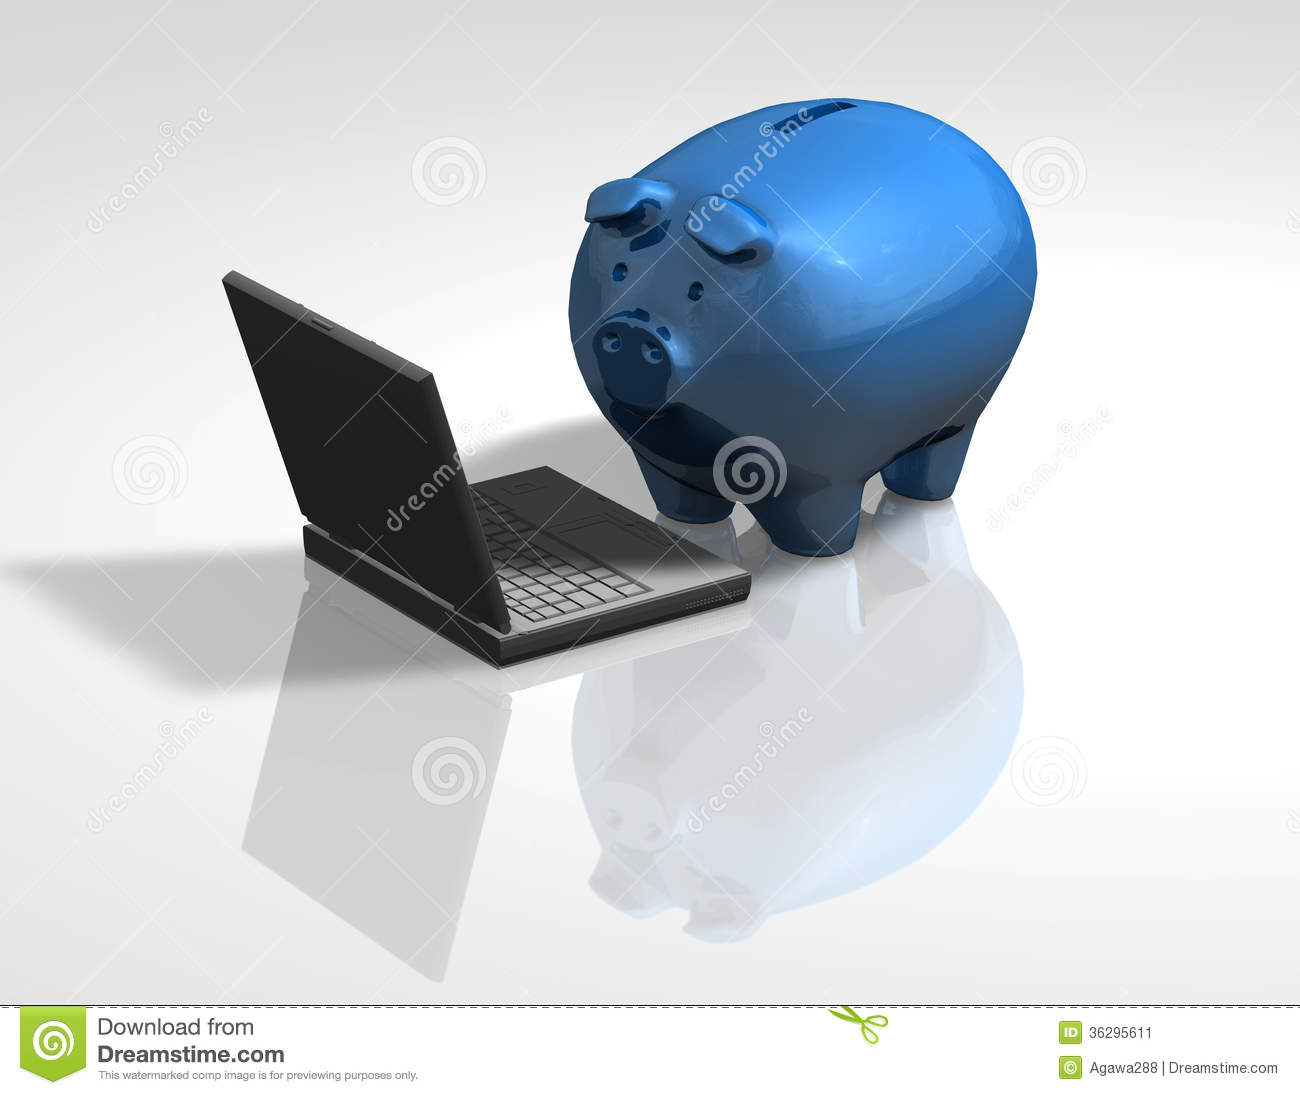 Piggy Bank Idea Piggy Bank With Laptop Financial Education And Information